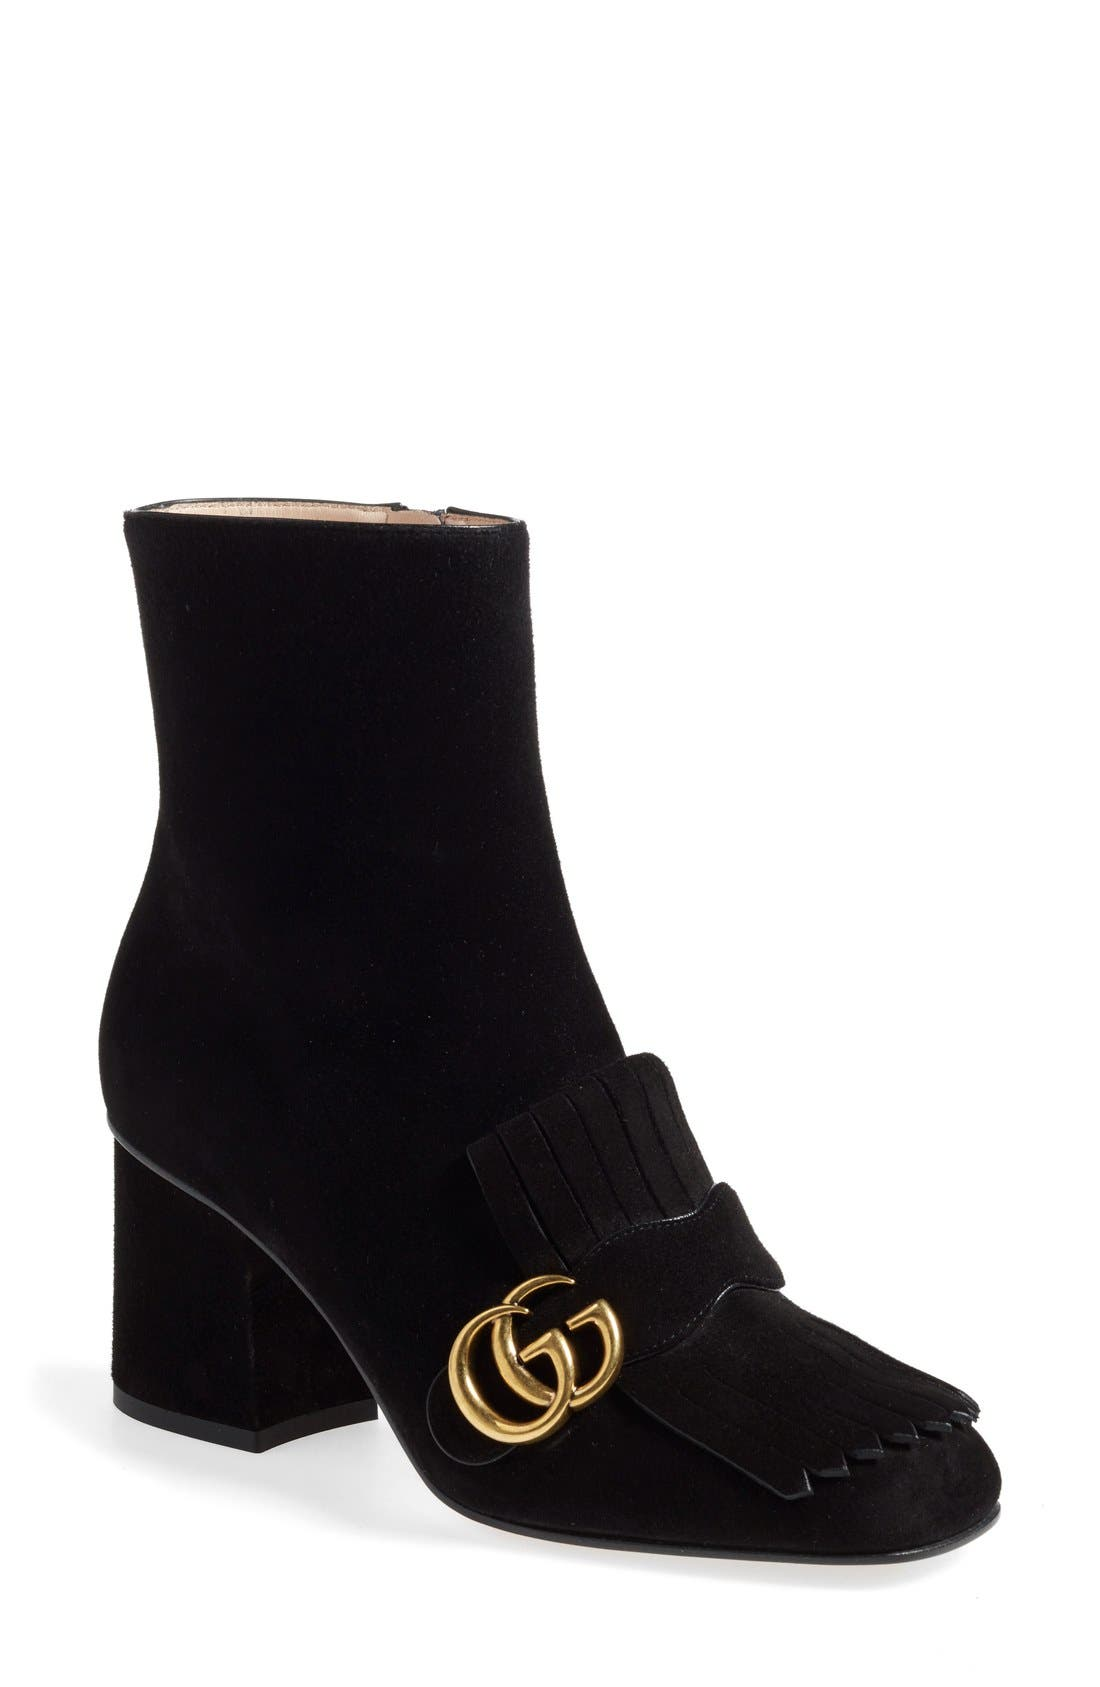 Alternate Image 1 Selected - Gucci GG Marmont Fringe Bootie (Women)